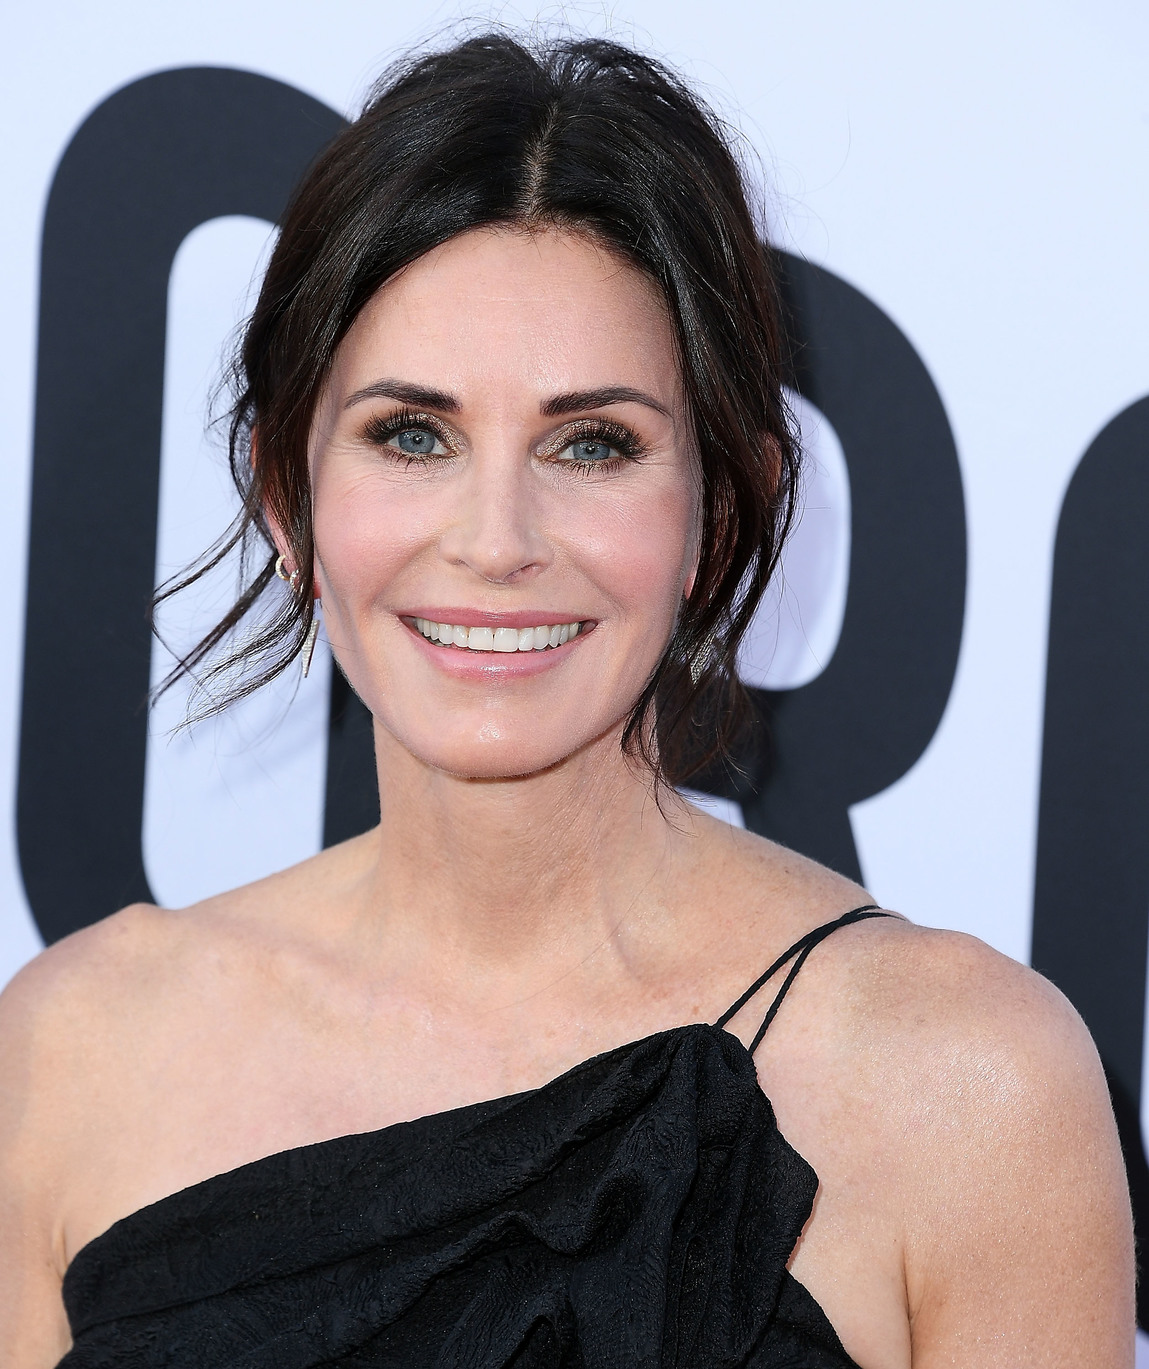 Courteney Cox (Fotó: Getty Images/ Steve Granitz)